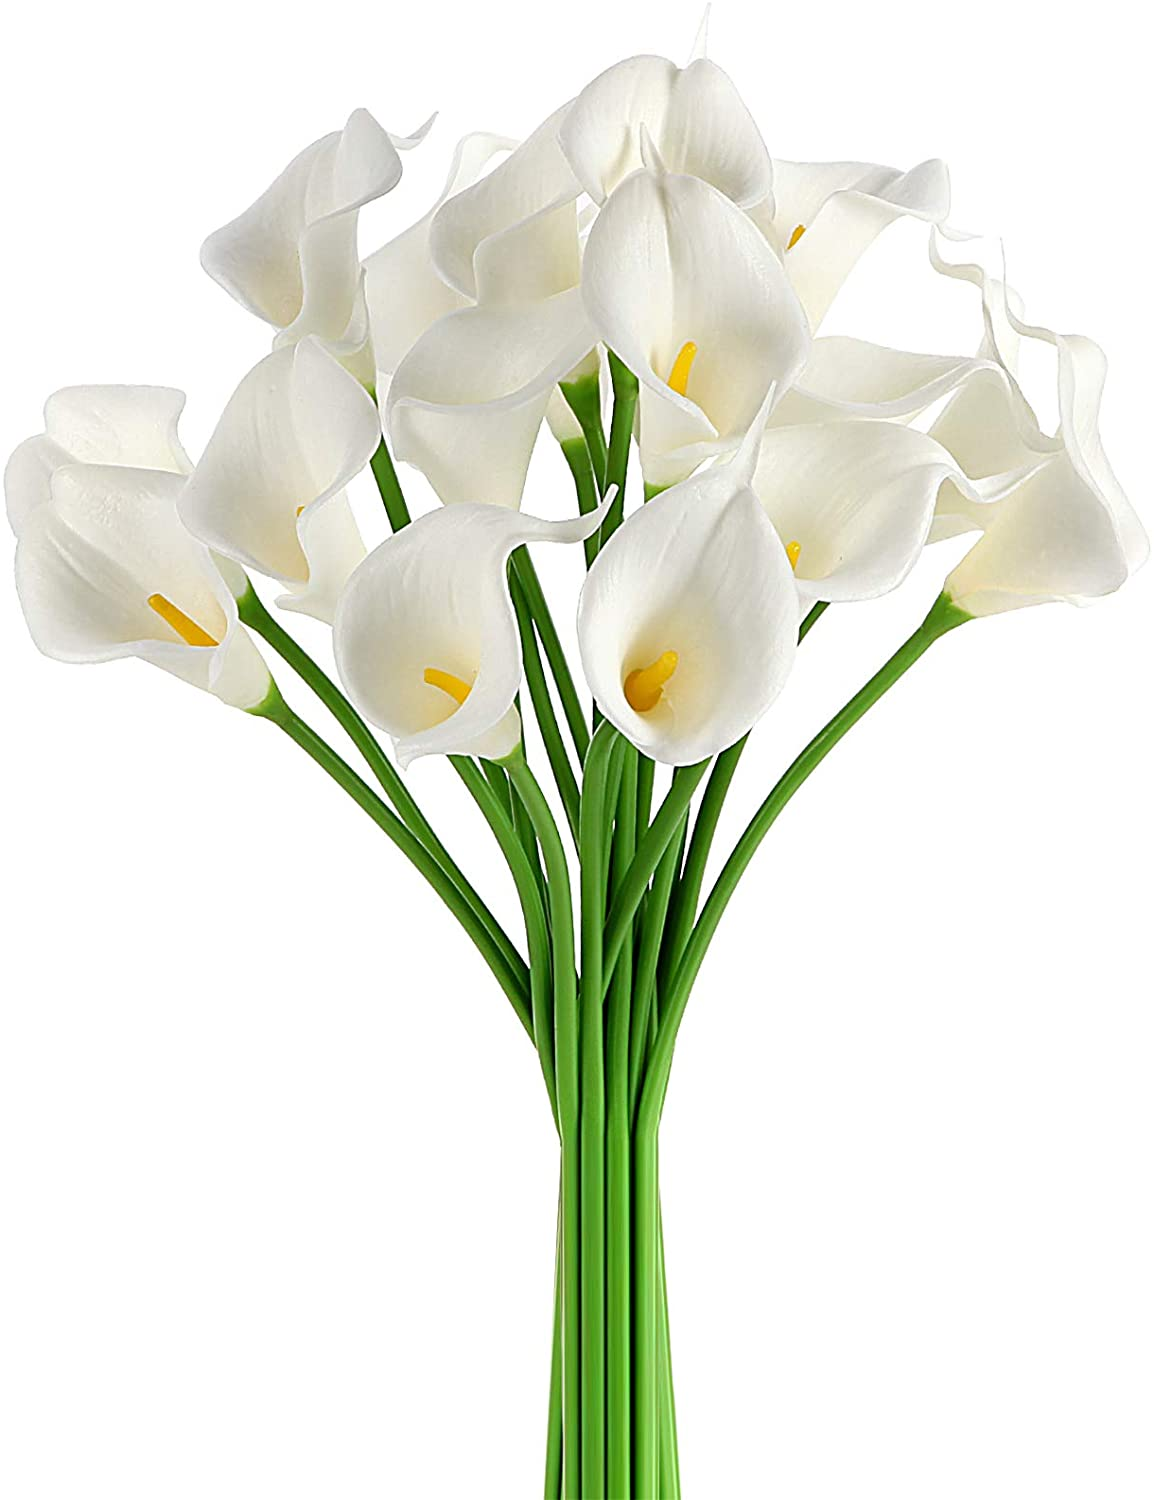 Ezflowery 10 Artificial Calla Lily Flowers Real Touch Latex Arrangement Bouquet Wedding Centerpiece Room Office Party Home Decor, Excellent Gift Idea (Small - 10 Pack, White)